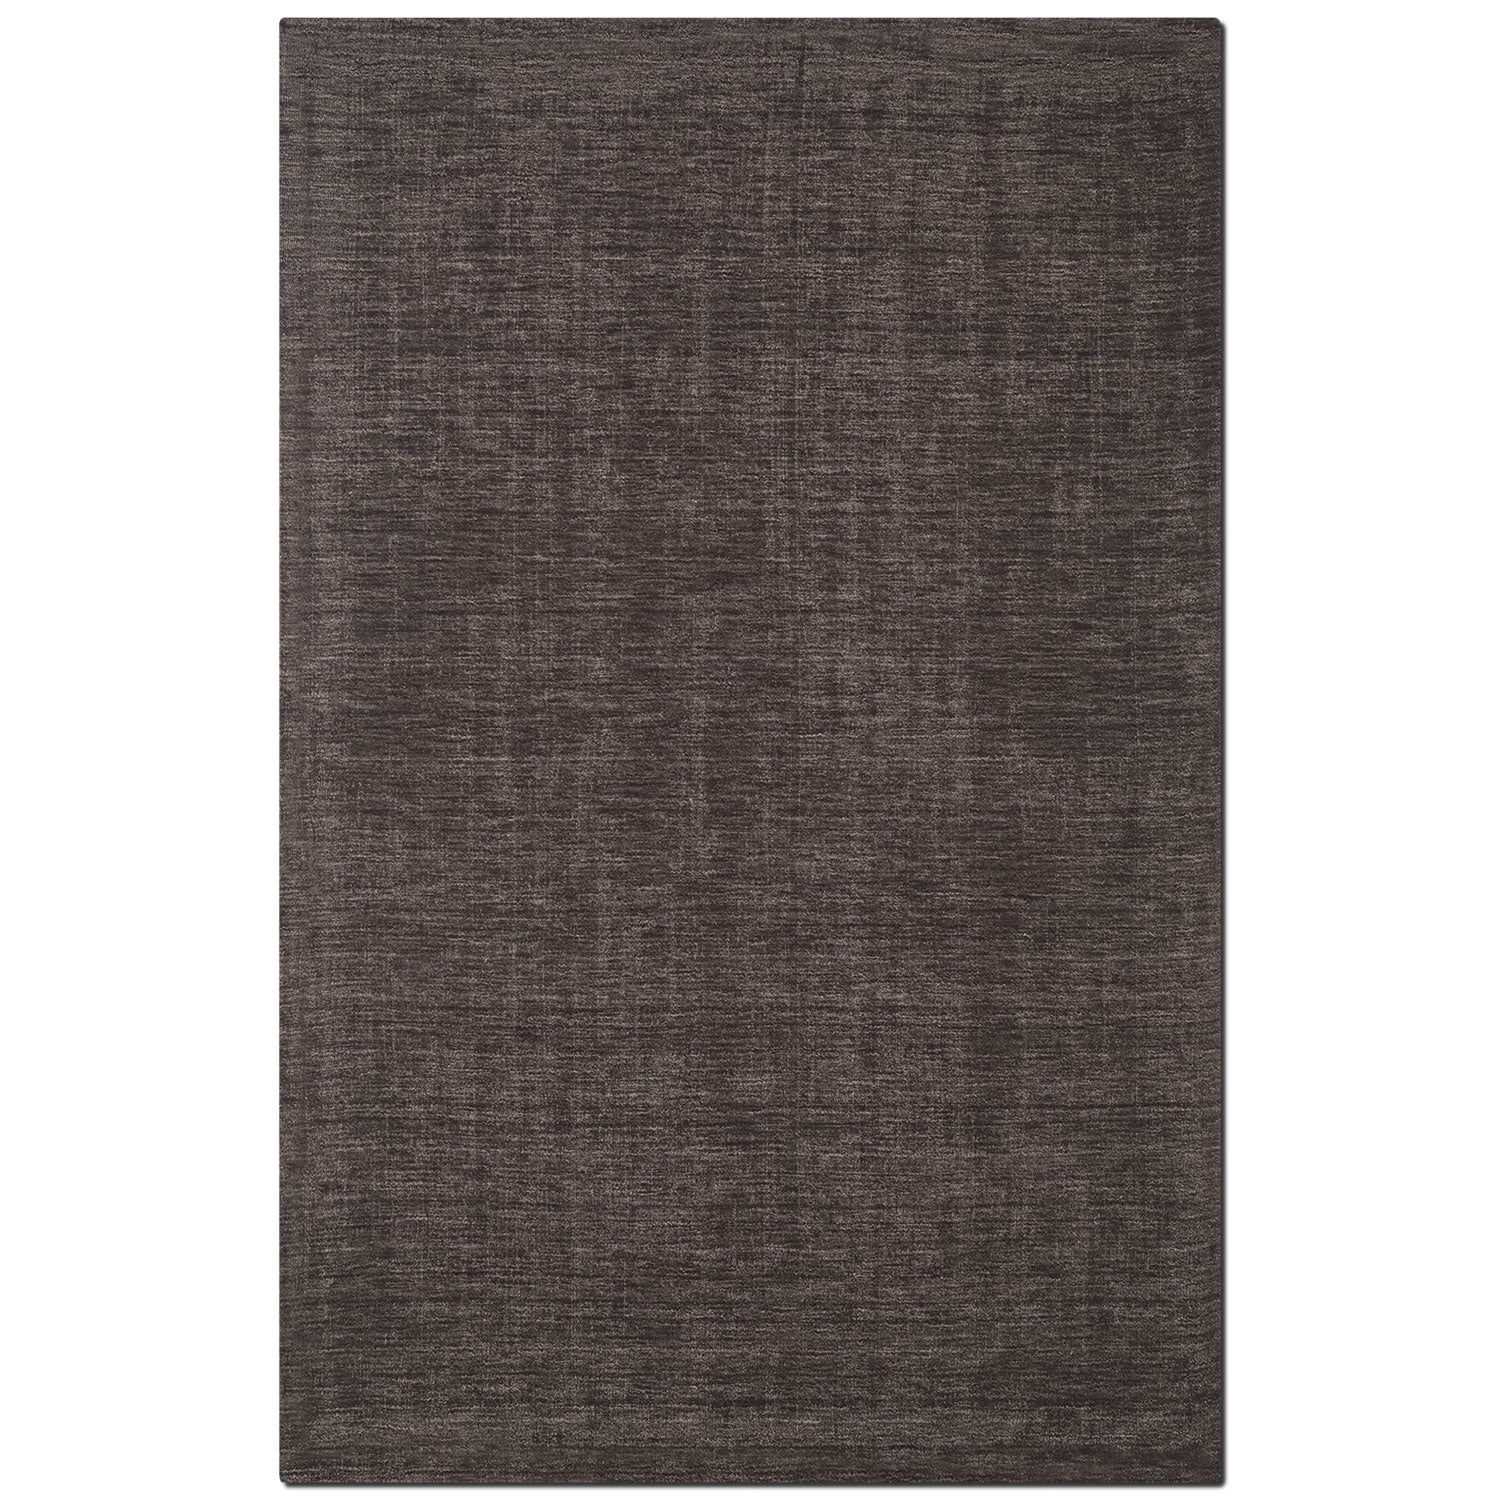 Rugs - Basics 5' x 8' Area Rug - Charcoal